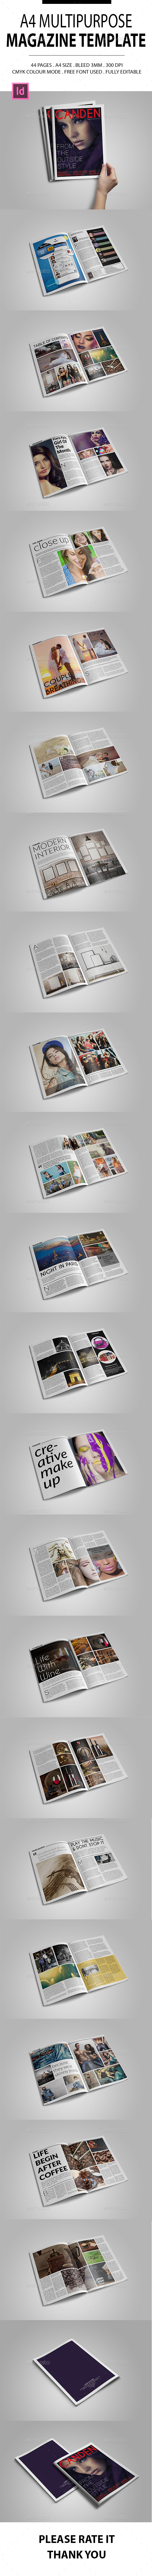 A4 Multipurpose Magazine Template - Magazines Print Templates